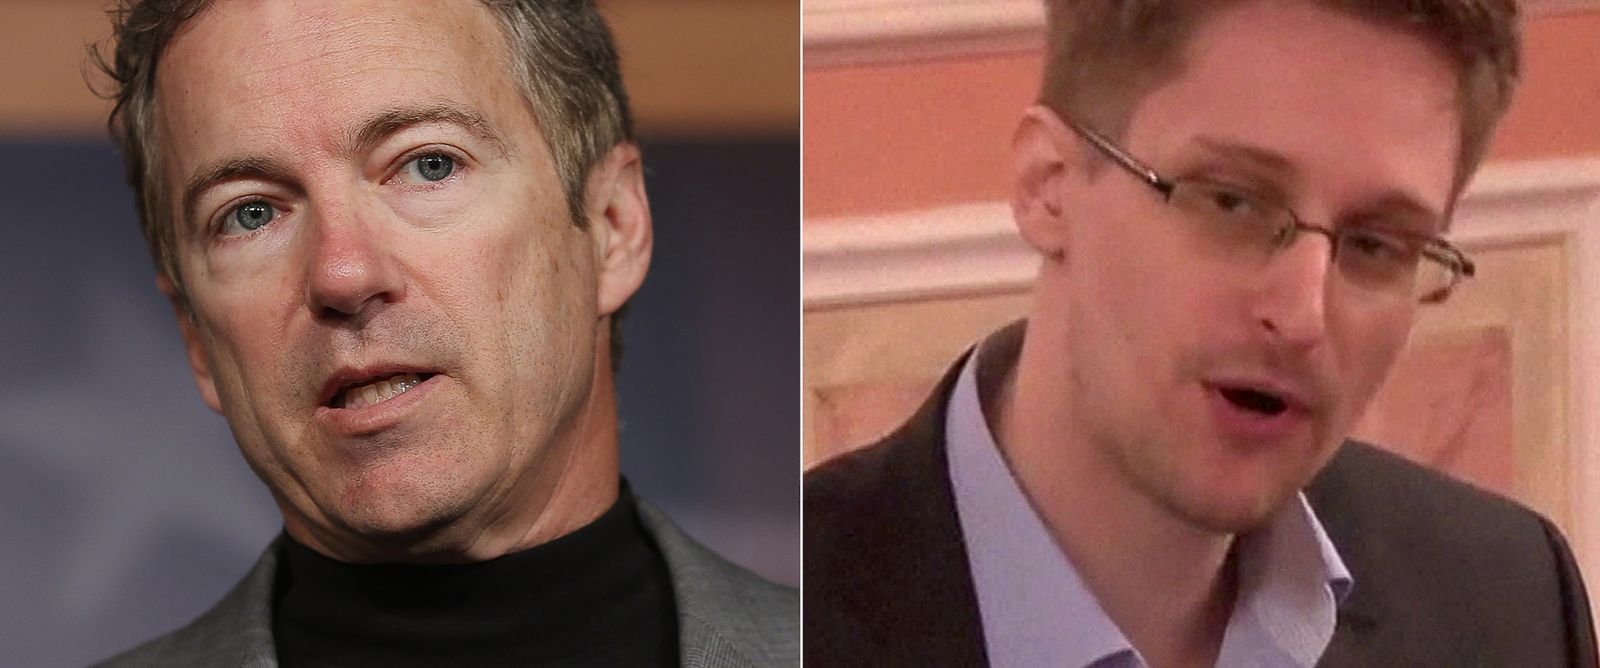 PHOTO: (L-R) Sen. Rand Paul, R-KY, in Washington, March 13, 2013.   Edward Snowden in a frame grab made from AFPTV footage at an unidentified location, Oct. 9, 2013.